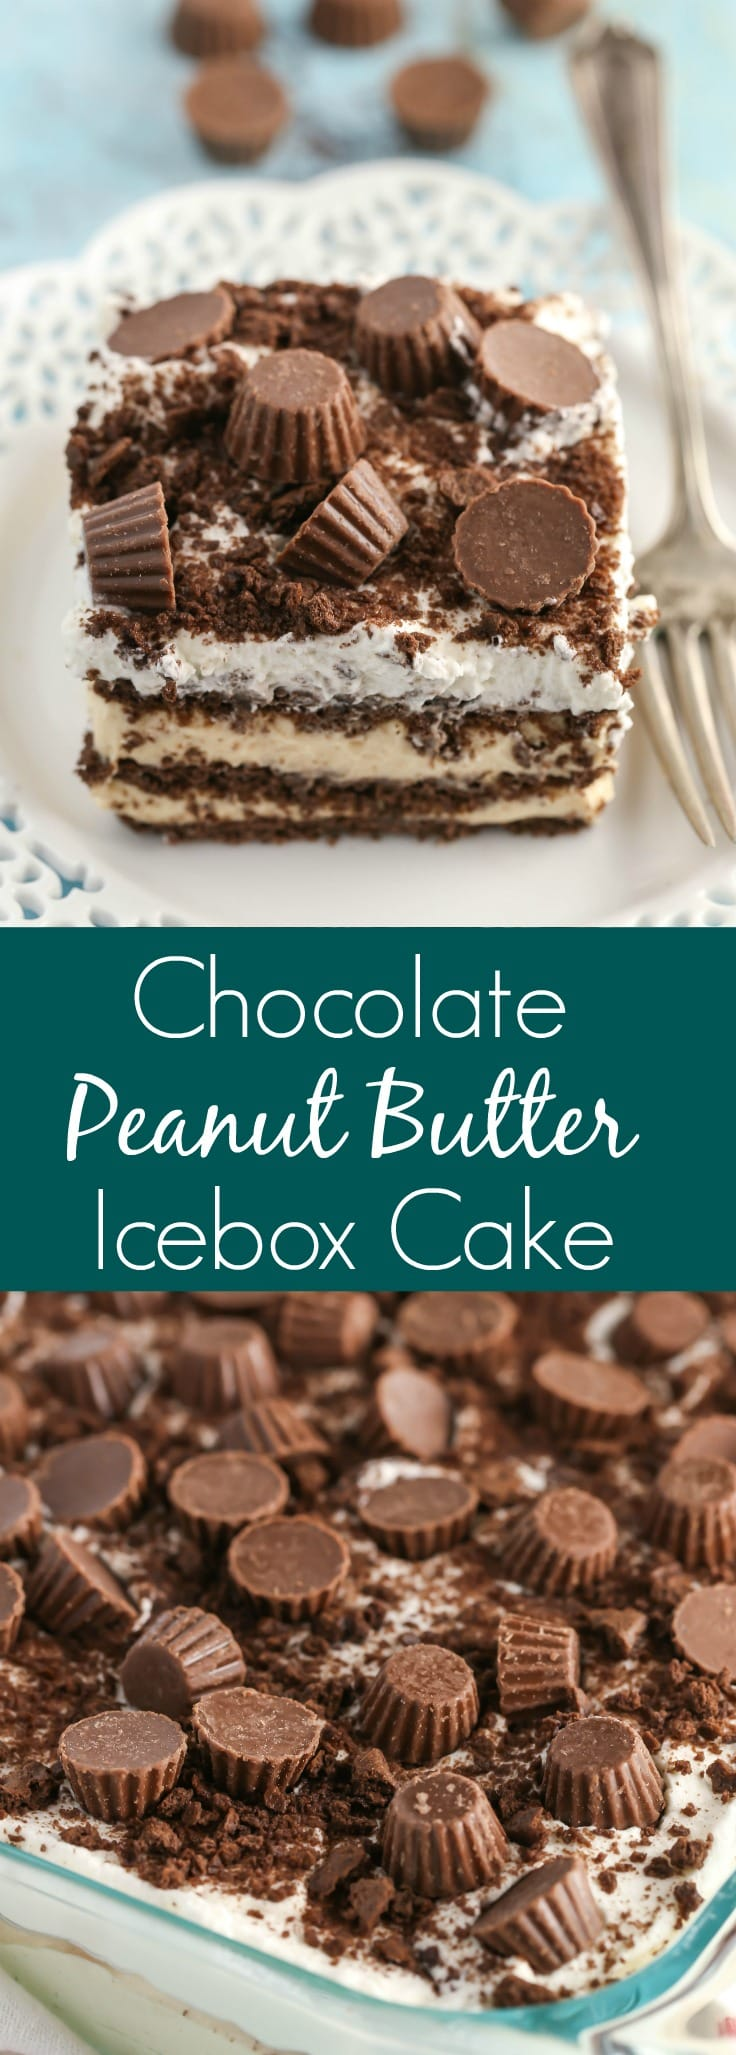 Layers of chocolate graham crackers and a creamy peanut butter filling topped off with whipped cream and mini peanut butter cups! This Chocolate Peanut Butter Icebox Cake is an easy and delicious no-bake dessert.